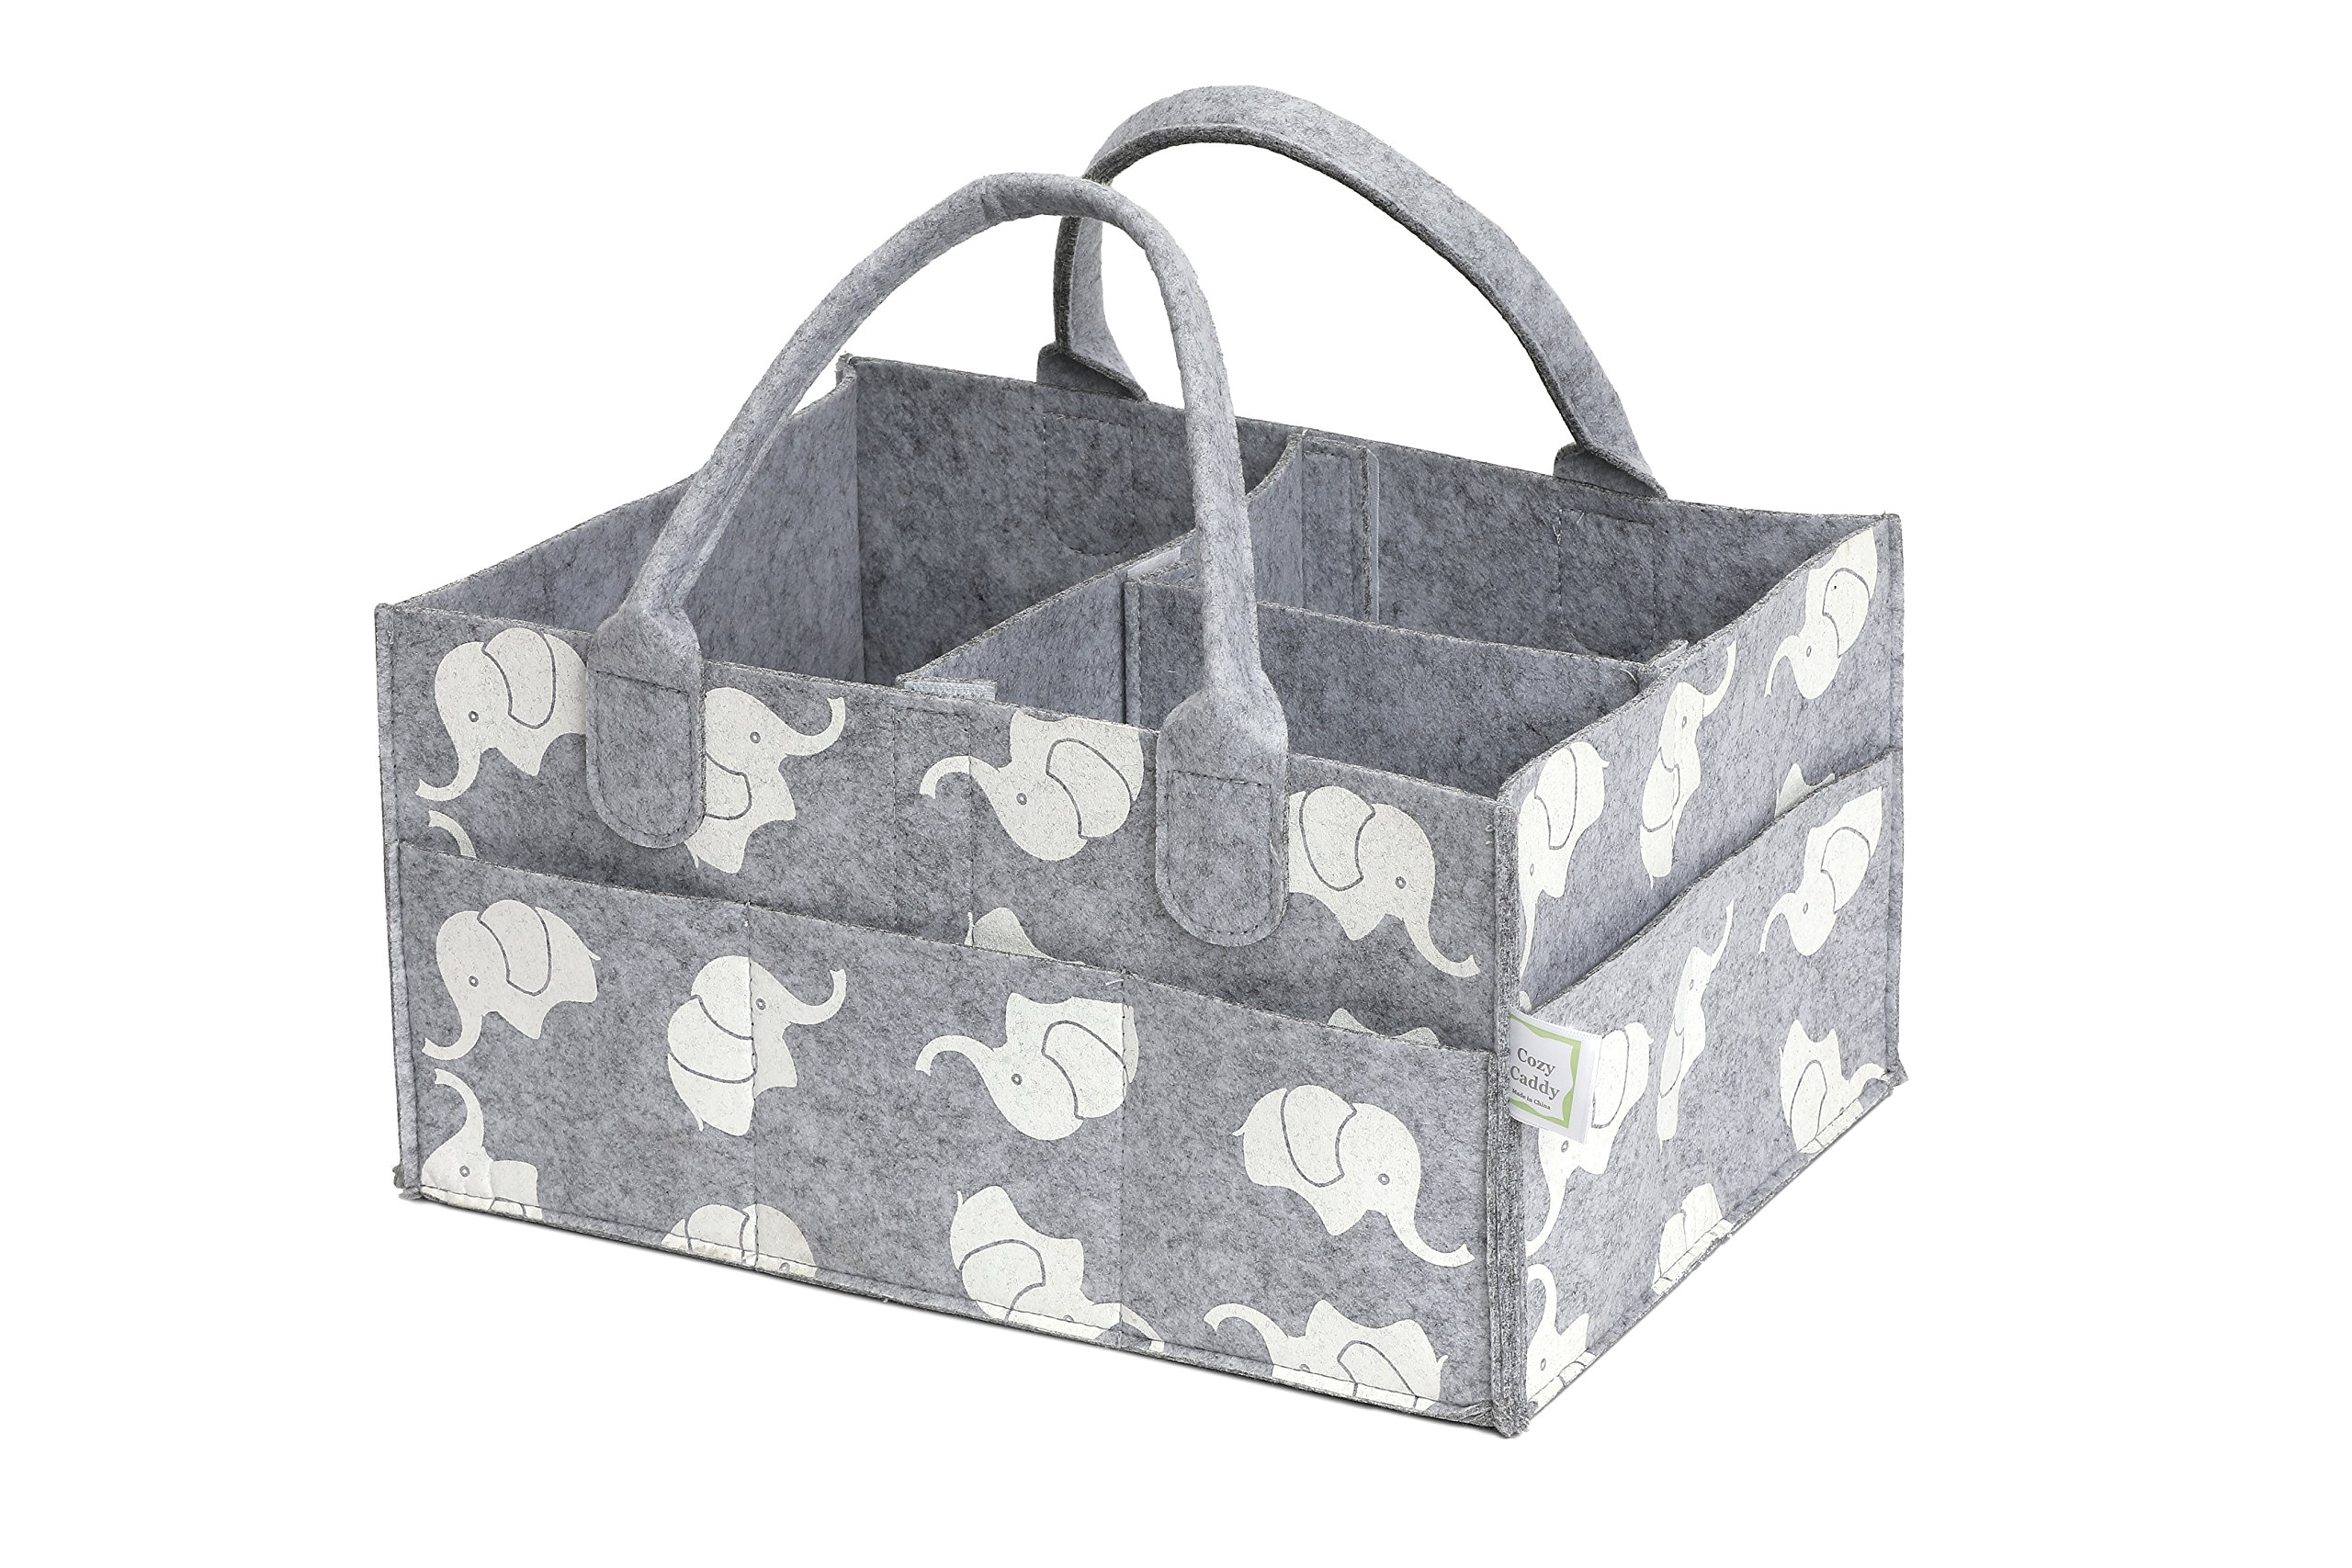 CozyCaddy Grey Diaper Caddy | Store Clothes, Teething Toys and Baby Stuff | Baby Shower Gift | 14'' X 10'' X 7'' Larger Sturdy Bottom | Durable Felt (Grey)